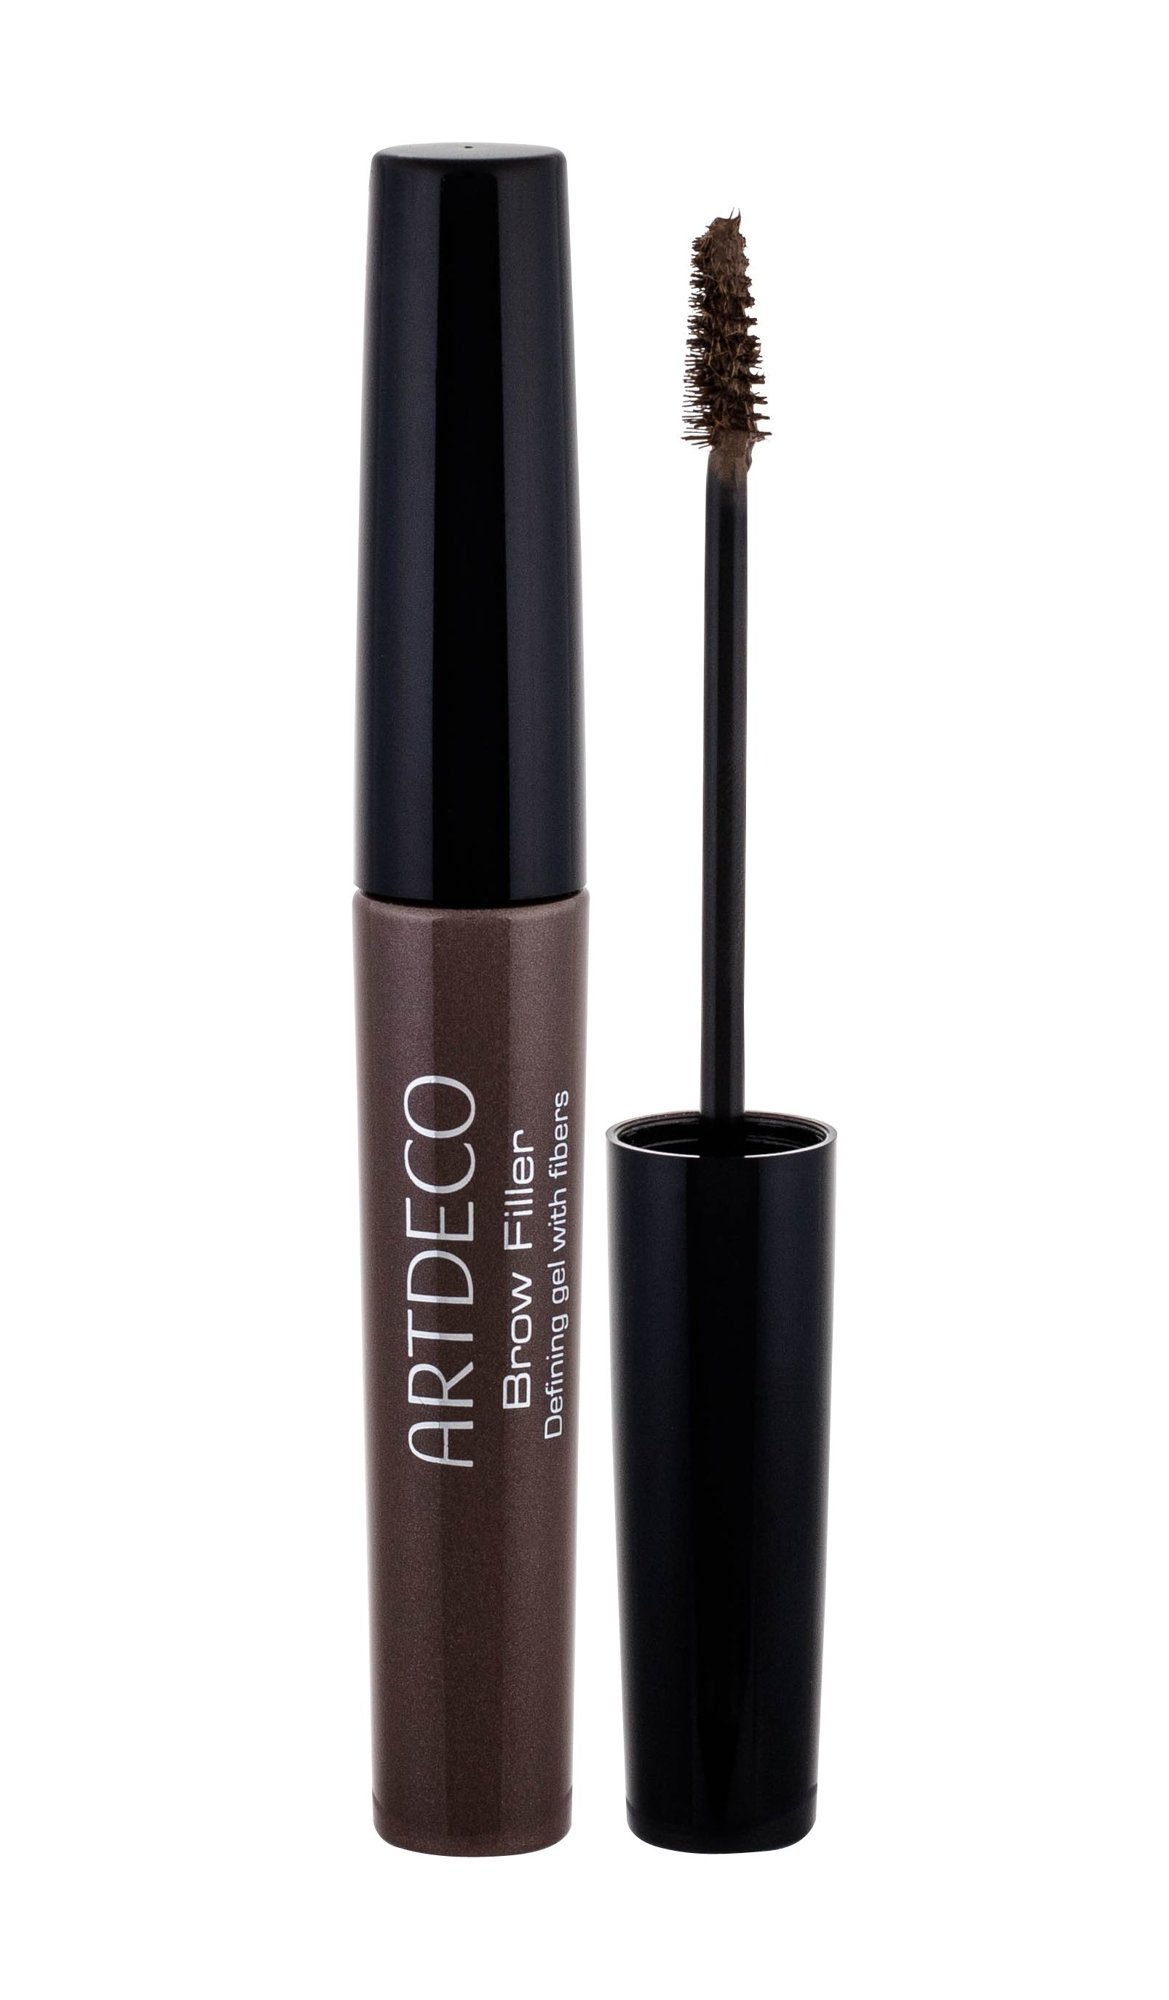 Artdeco Brow Filler Eyebrow Mascara 7ml 2 Light Brown